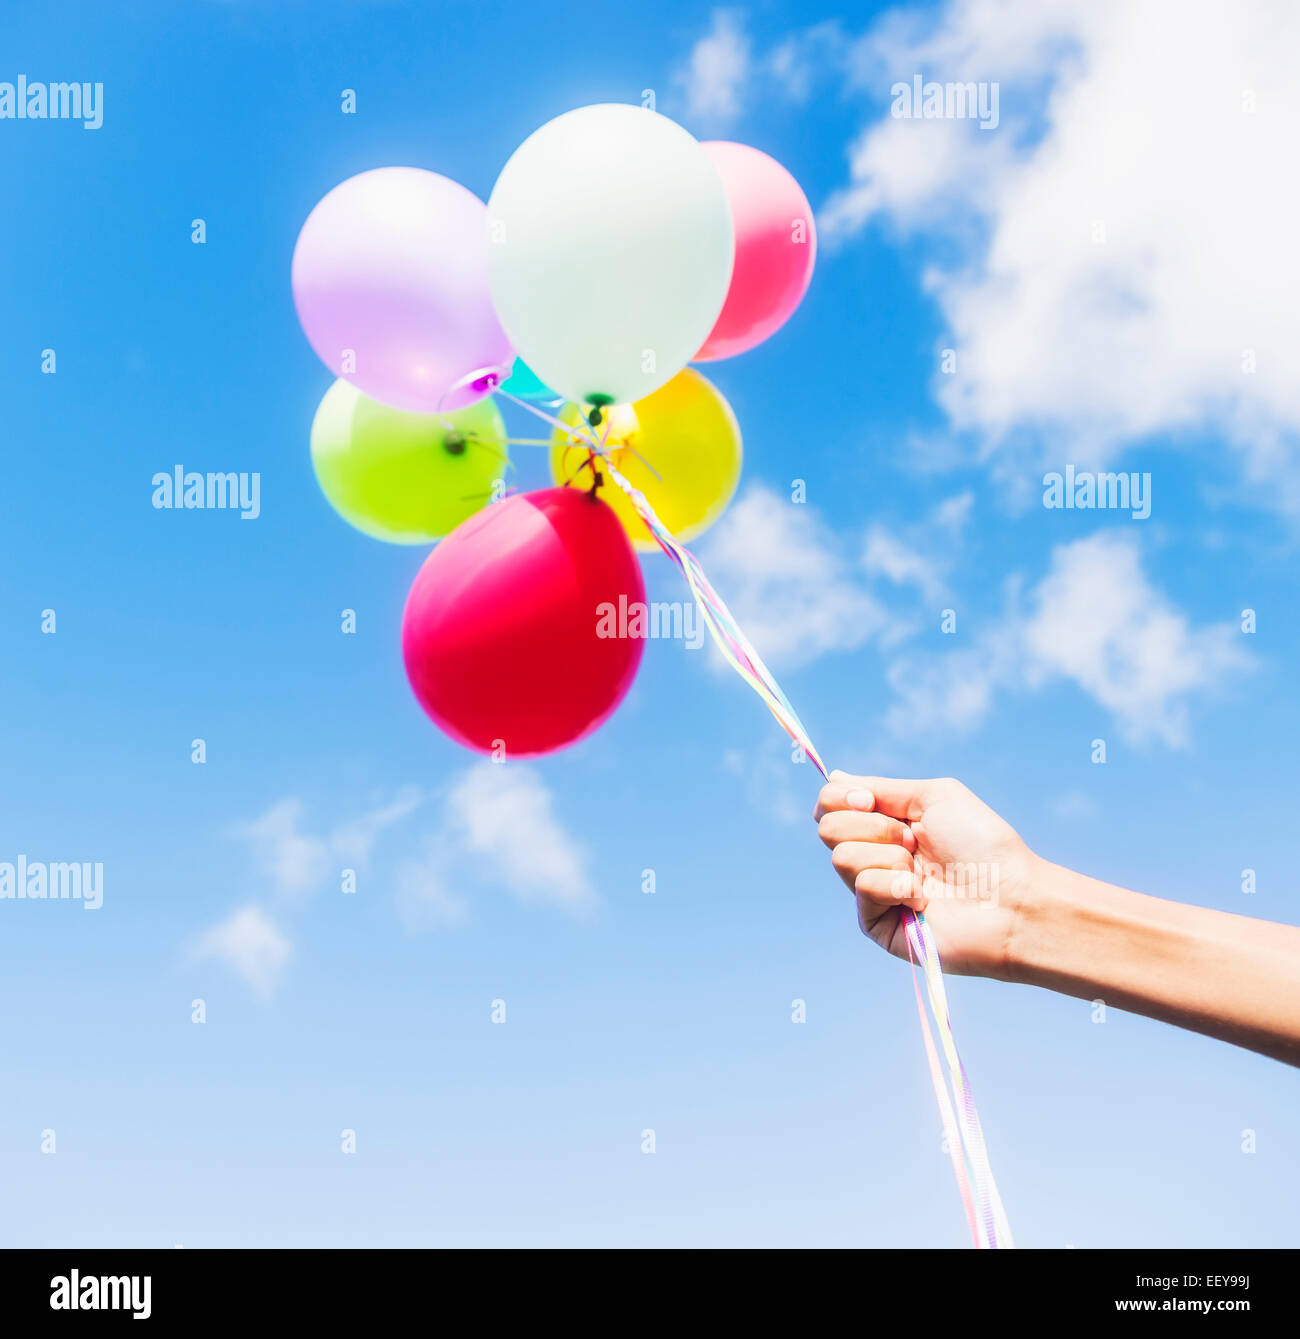 Young man holding balloons - Stock Image